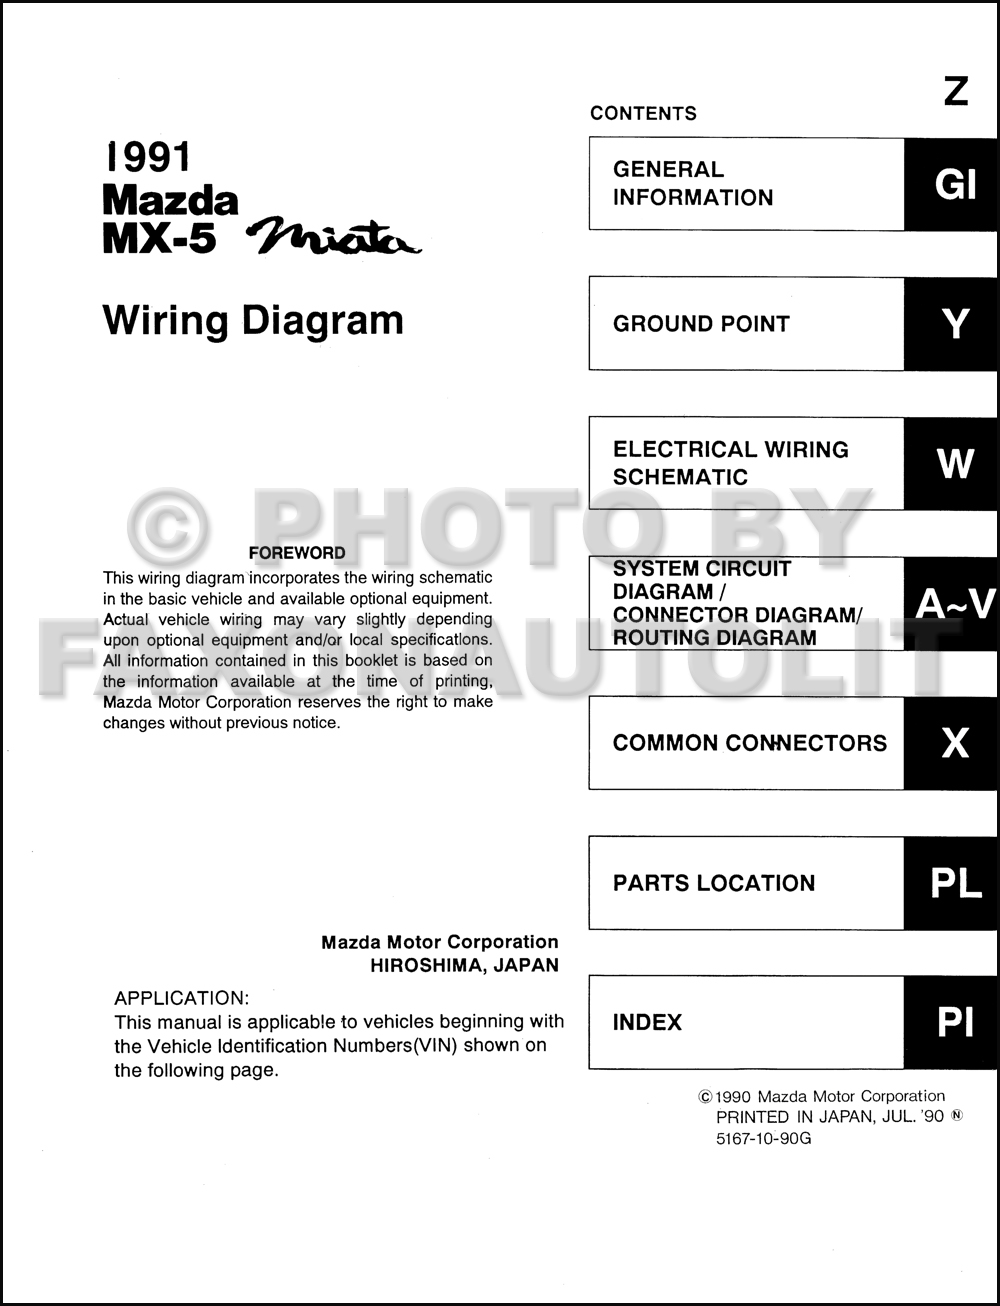 1991 Mazda MX-5 Miata Wiring Diagram Manual Original